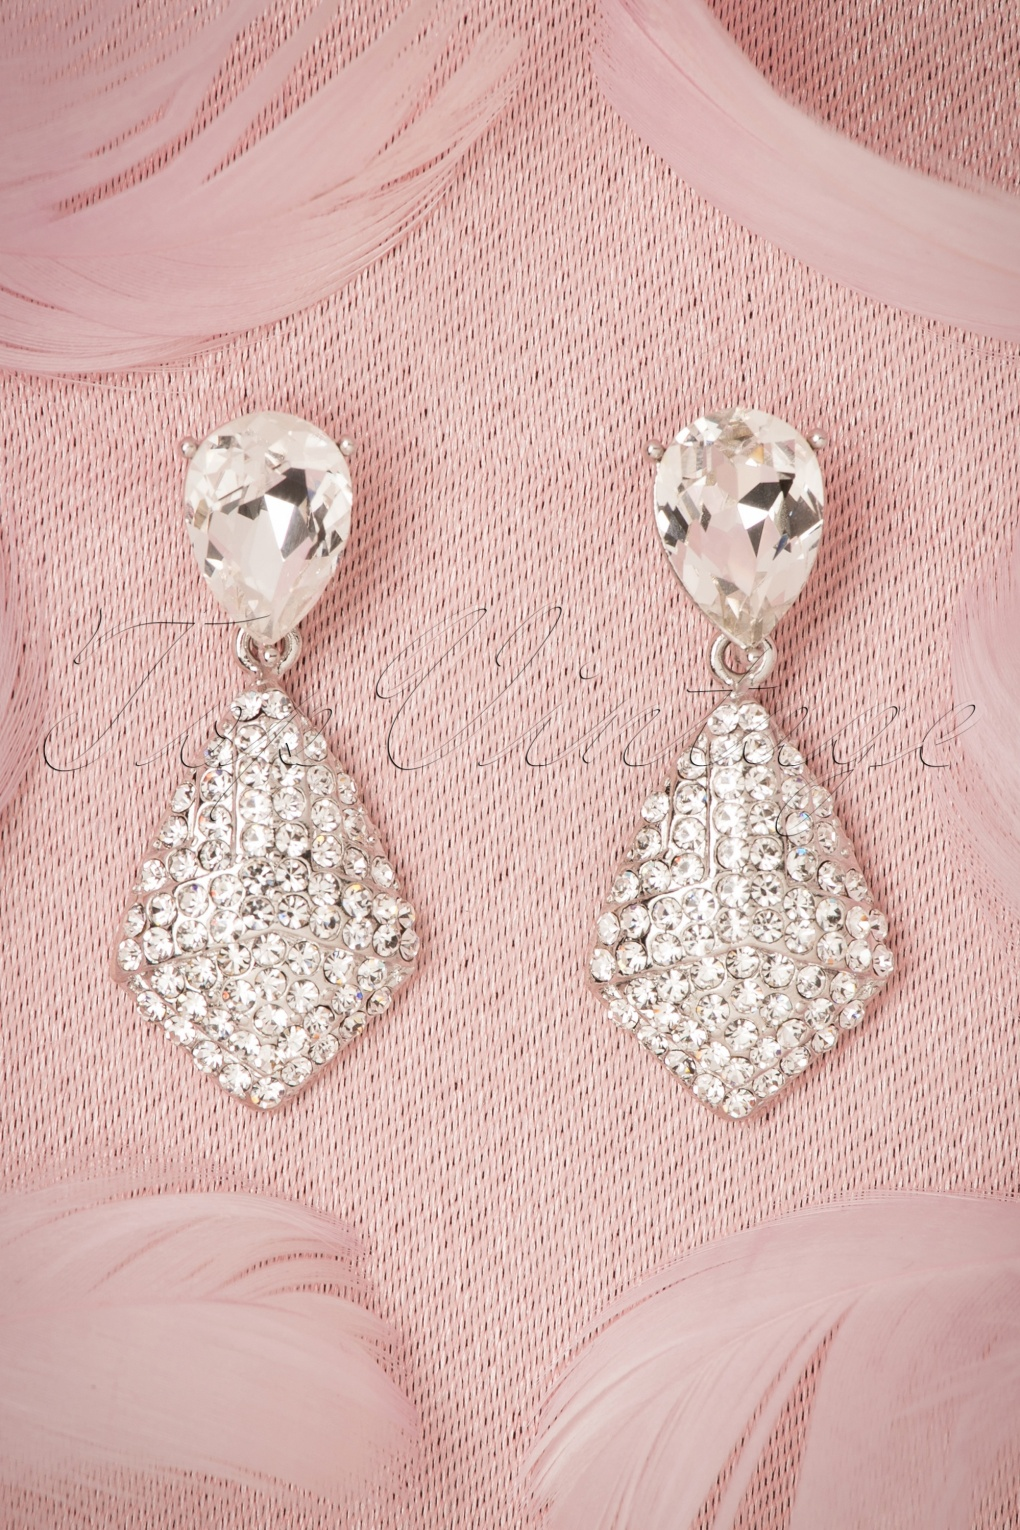 New 1940s Costume Jewelry: Necklaces, Earrings, Pins 40s Crystal Tear Drop Earrings in Silver £21.05 AT vintagedancer.com